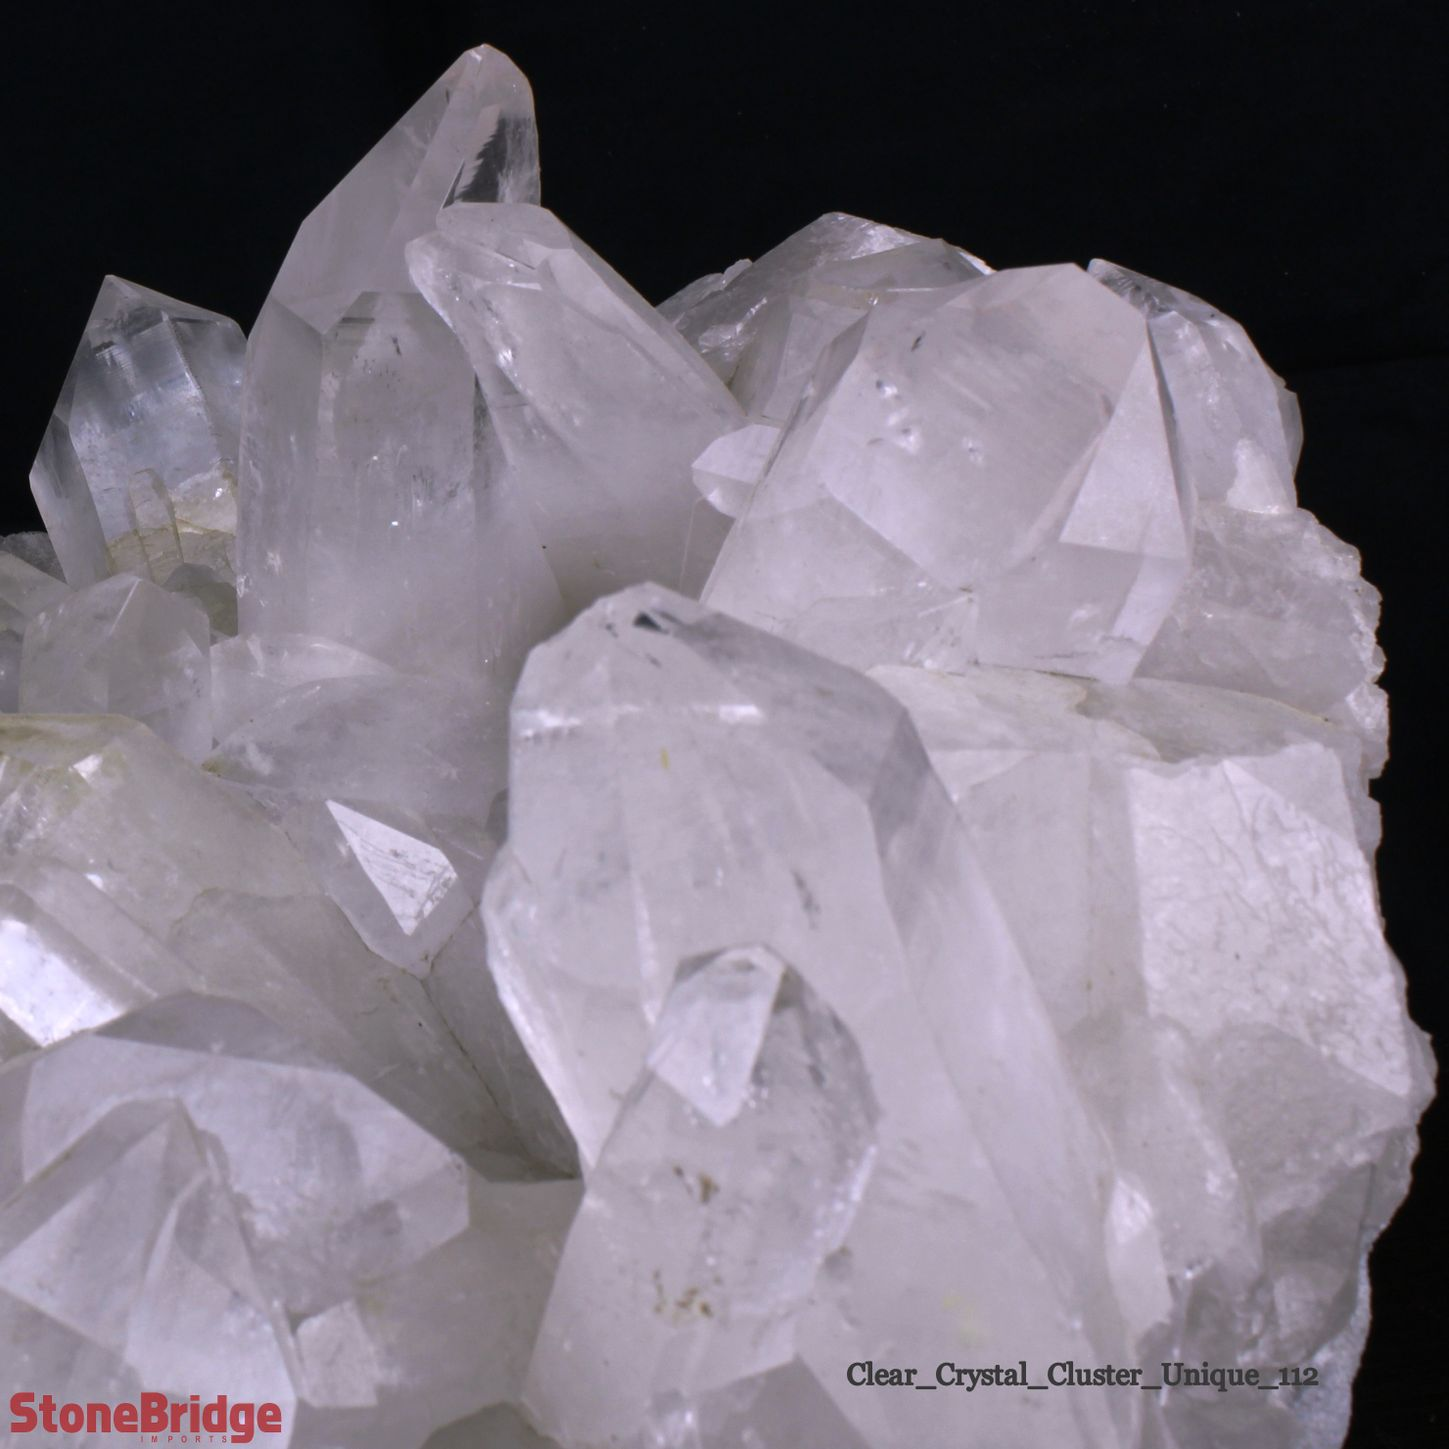 CLCRU112_Clear_Crystal_Cluster_Unique_1124.jpg